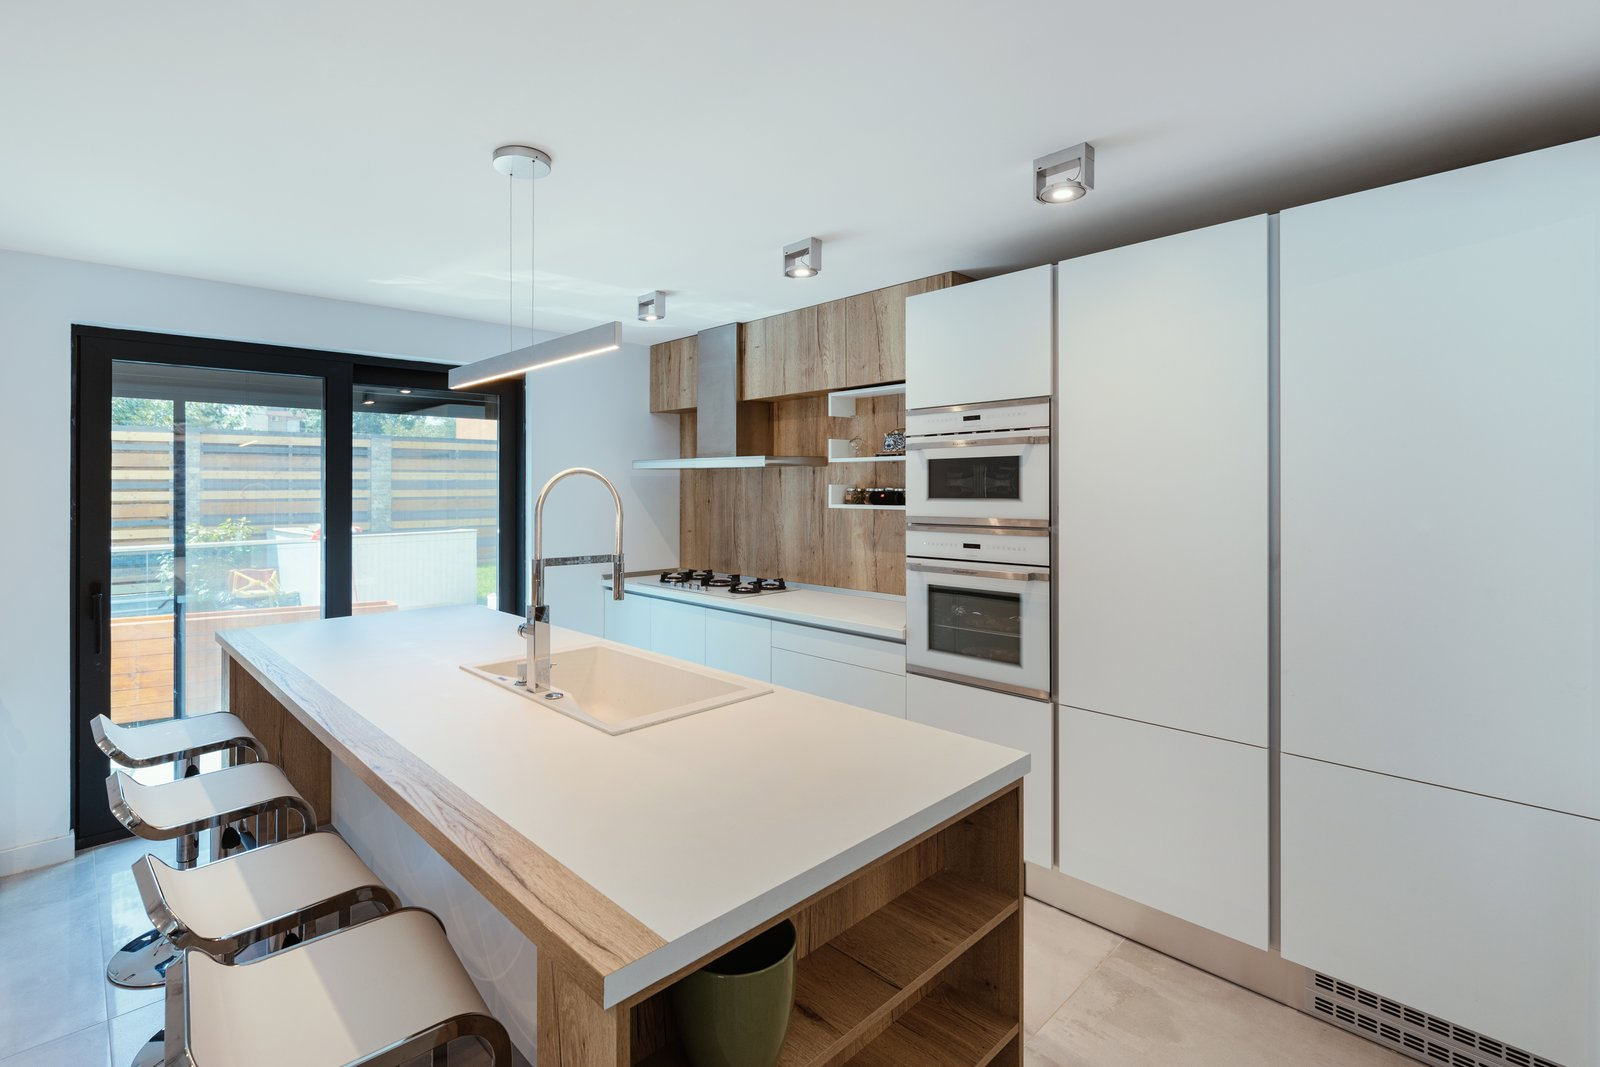 Kitchen, Ceramic Tile Floor, Drop In Sink, and Ceiling Lighting  From Sky to Sea